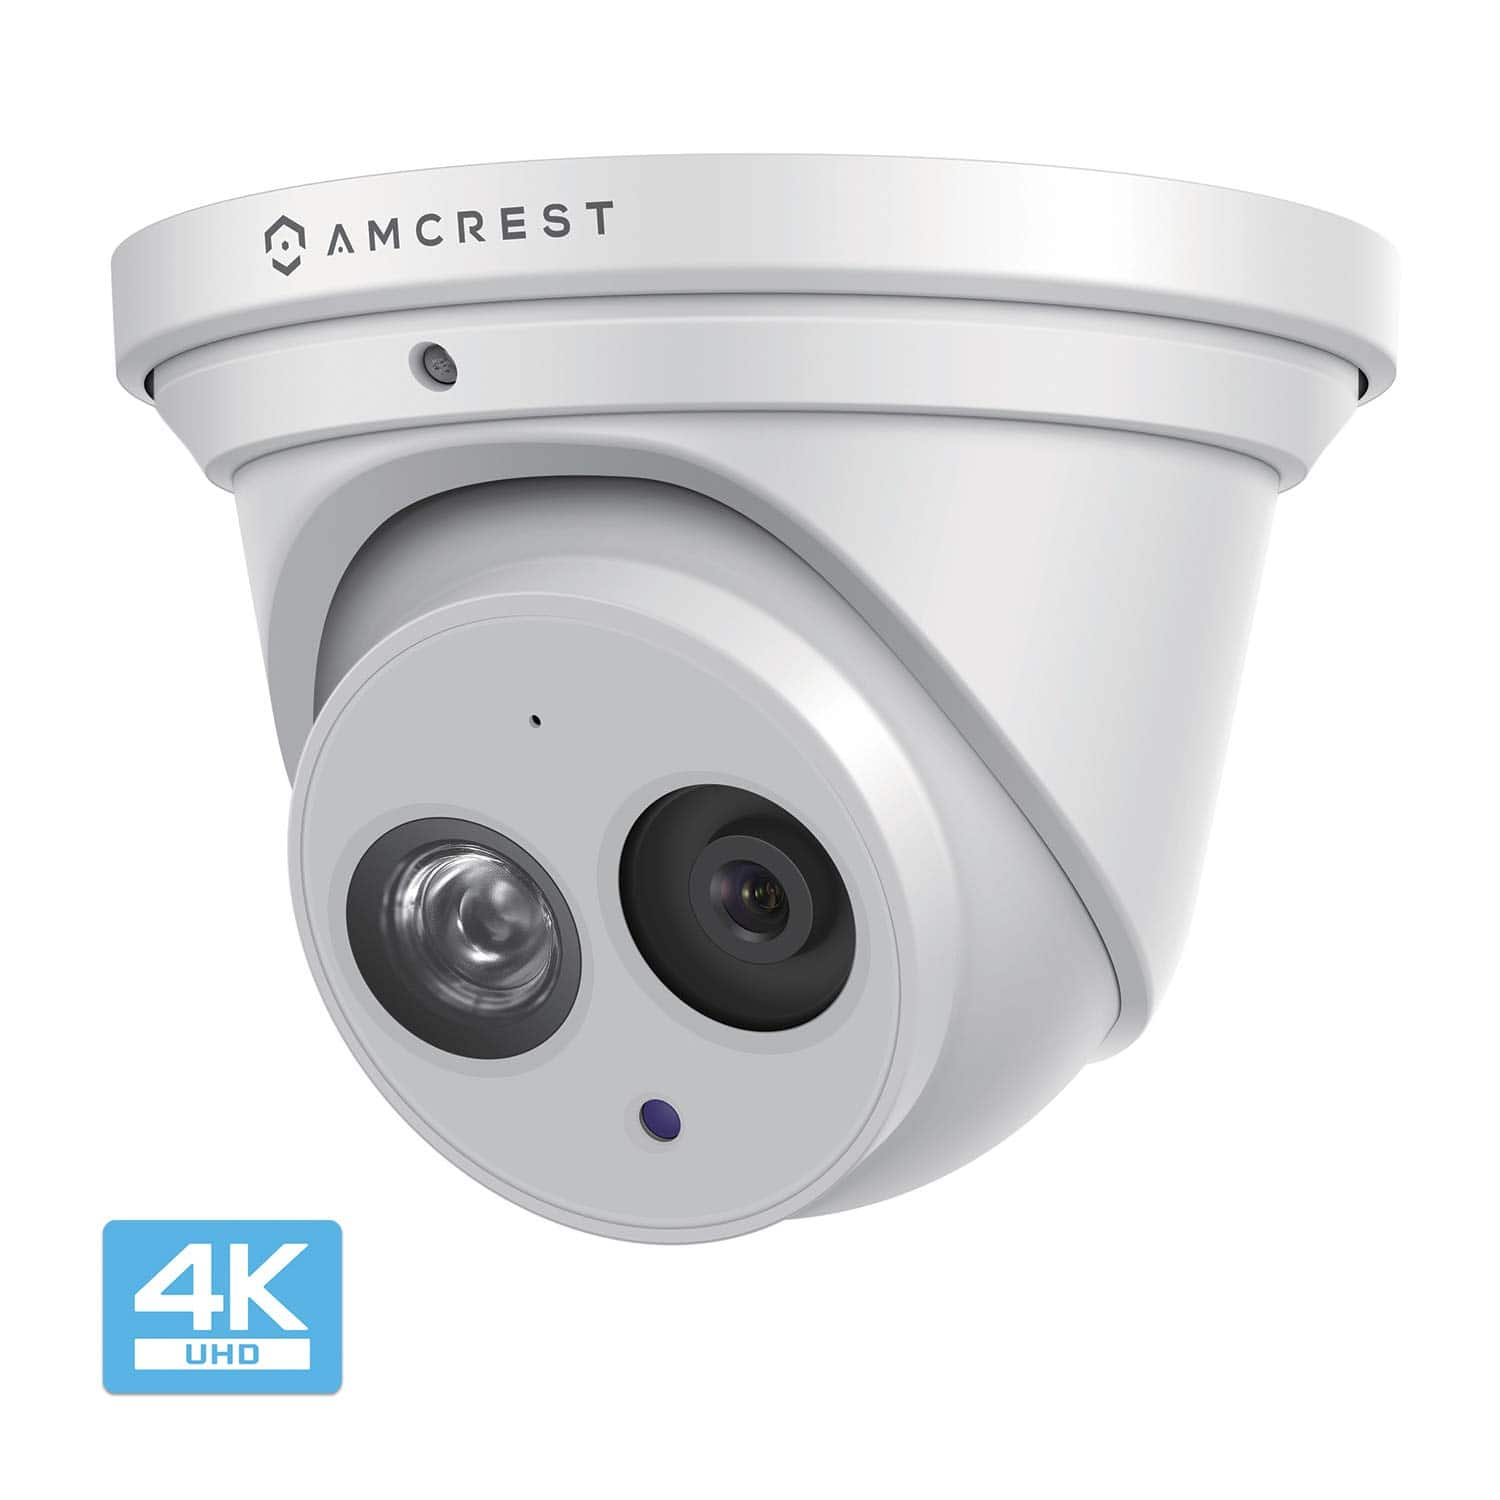 Amcrest  UltraHD 4K (8MP) Outdoor Security IP Turret PoE Camera Ambarella starvis lowlight sensor mic SD/FTP recording $100